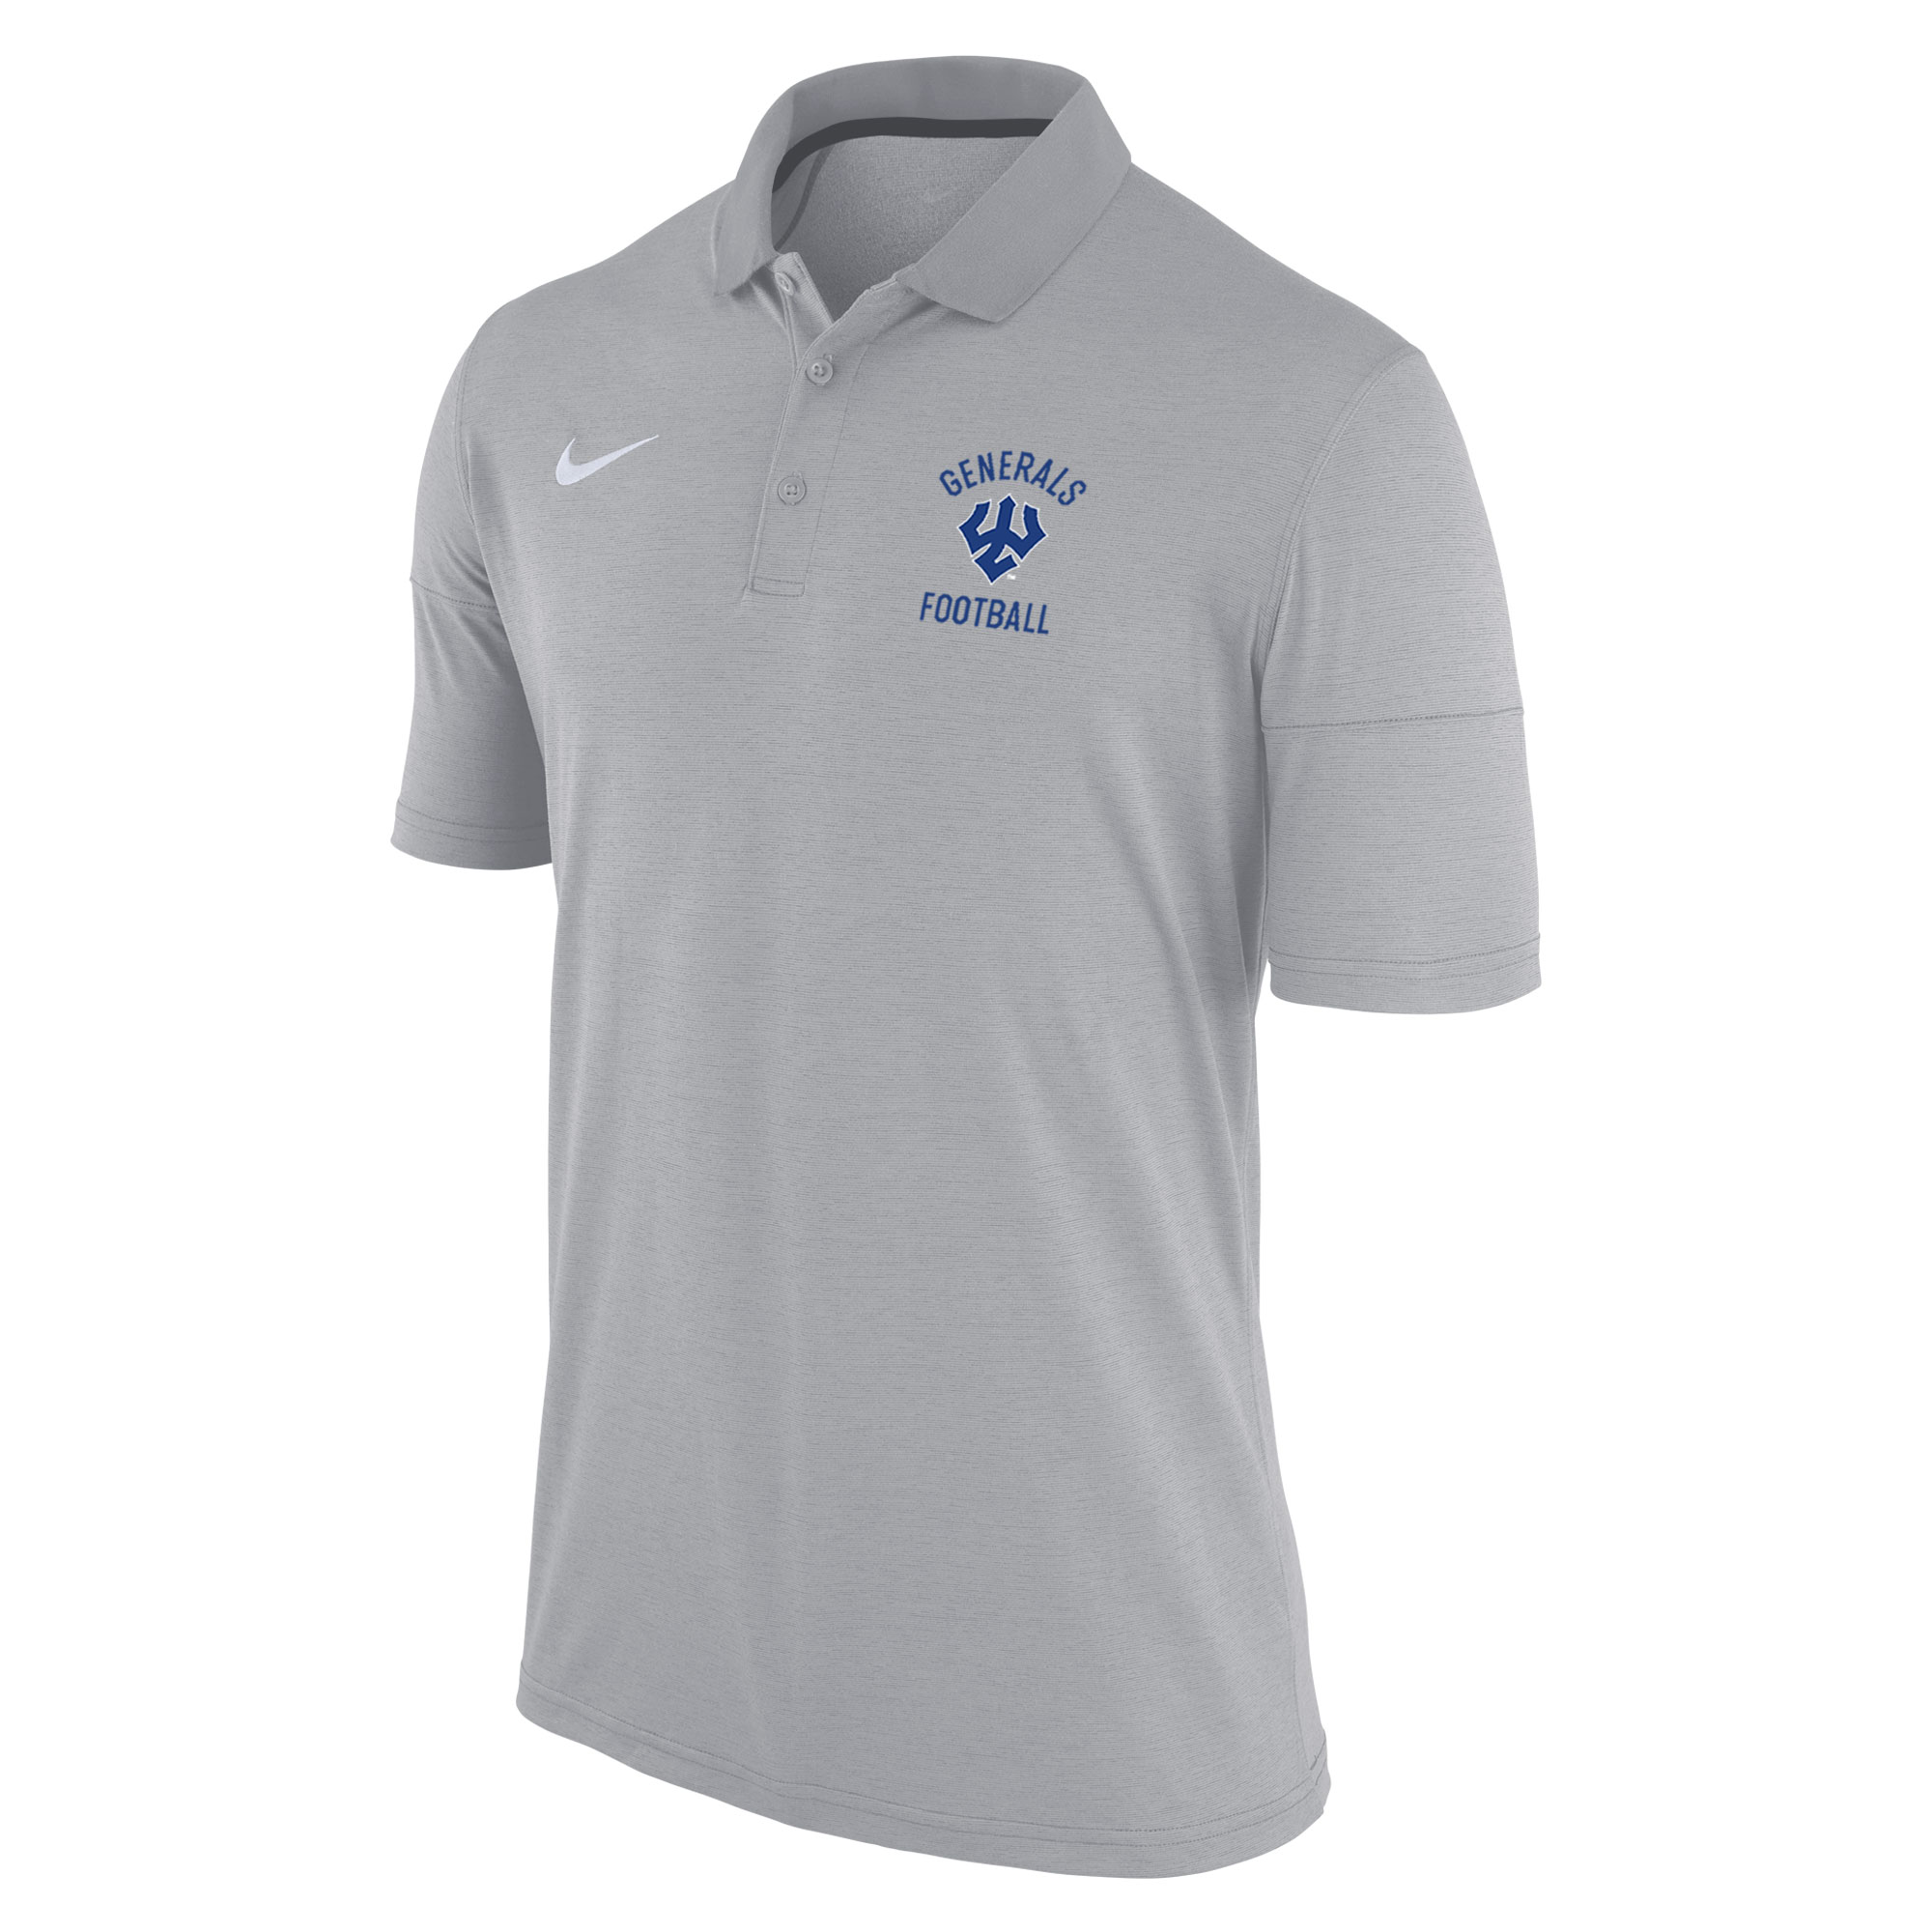 Nike Football DriFit Polo, Grey